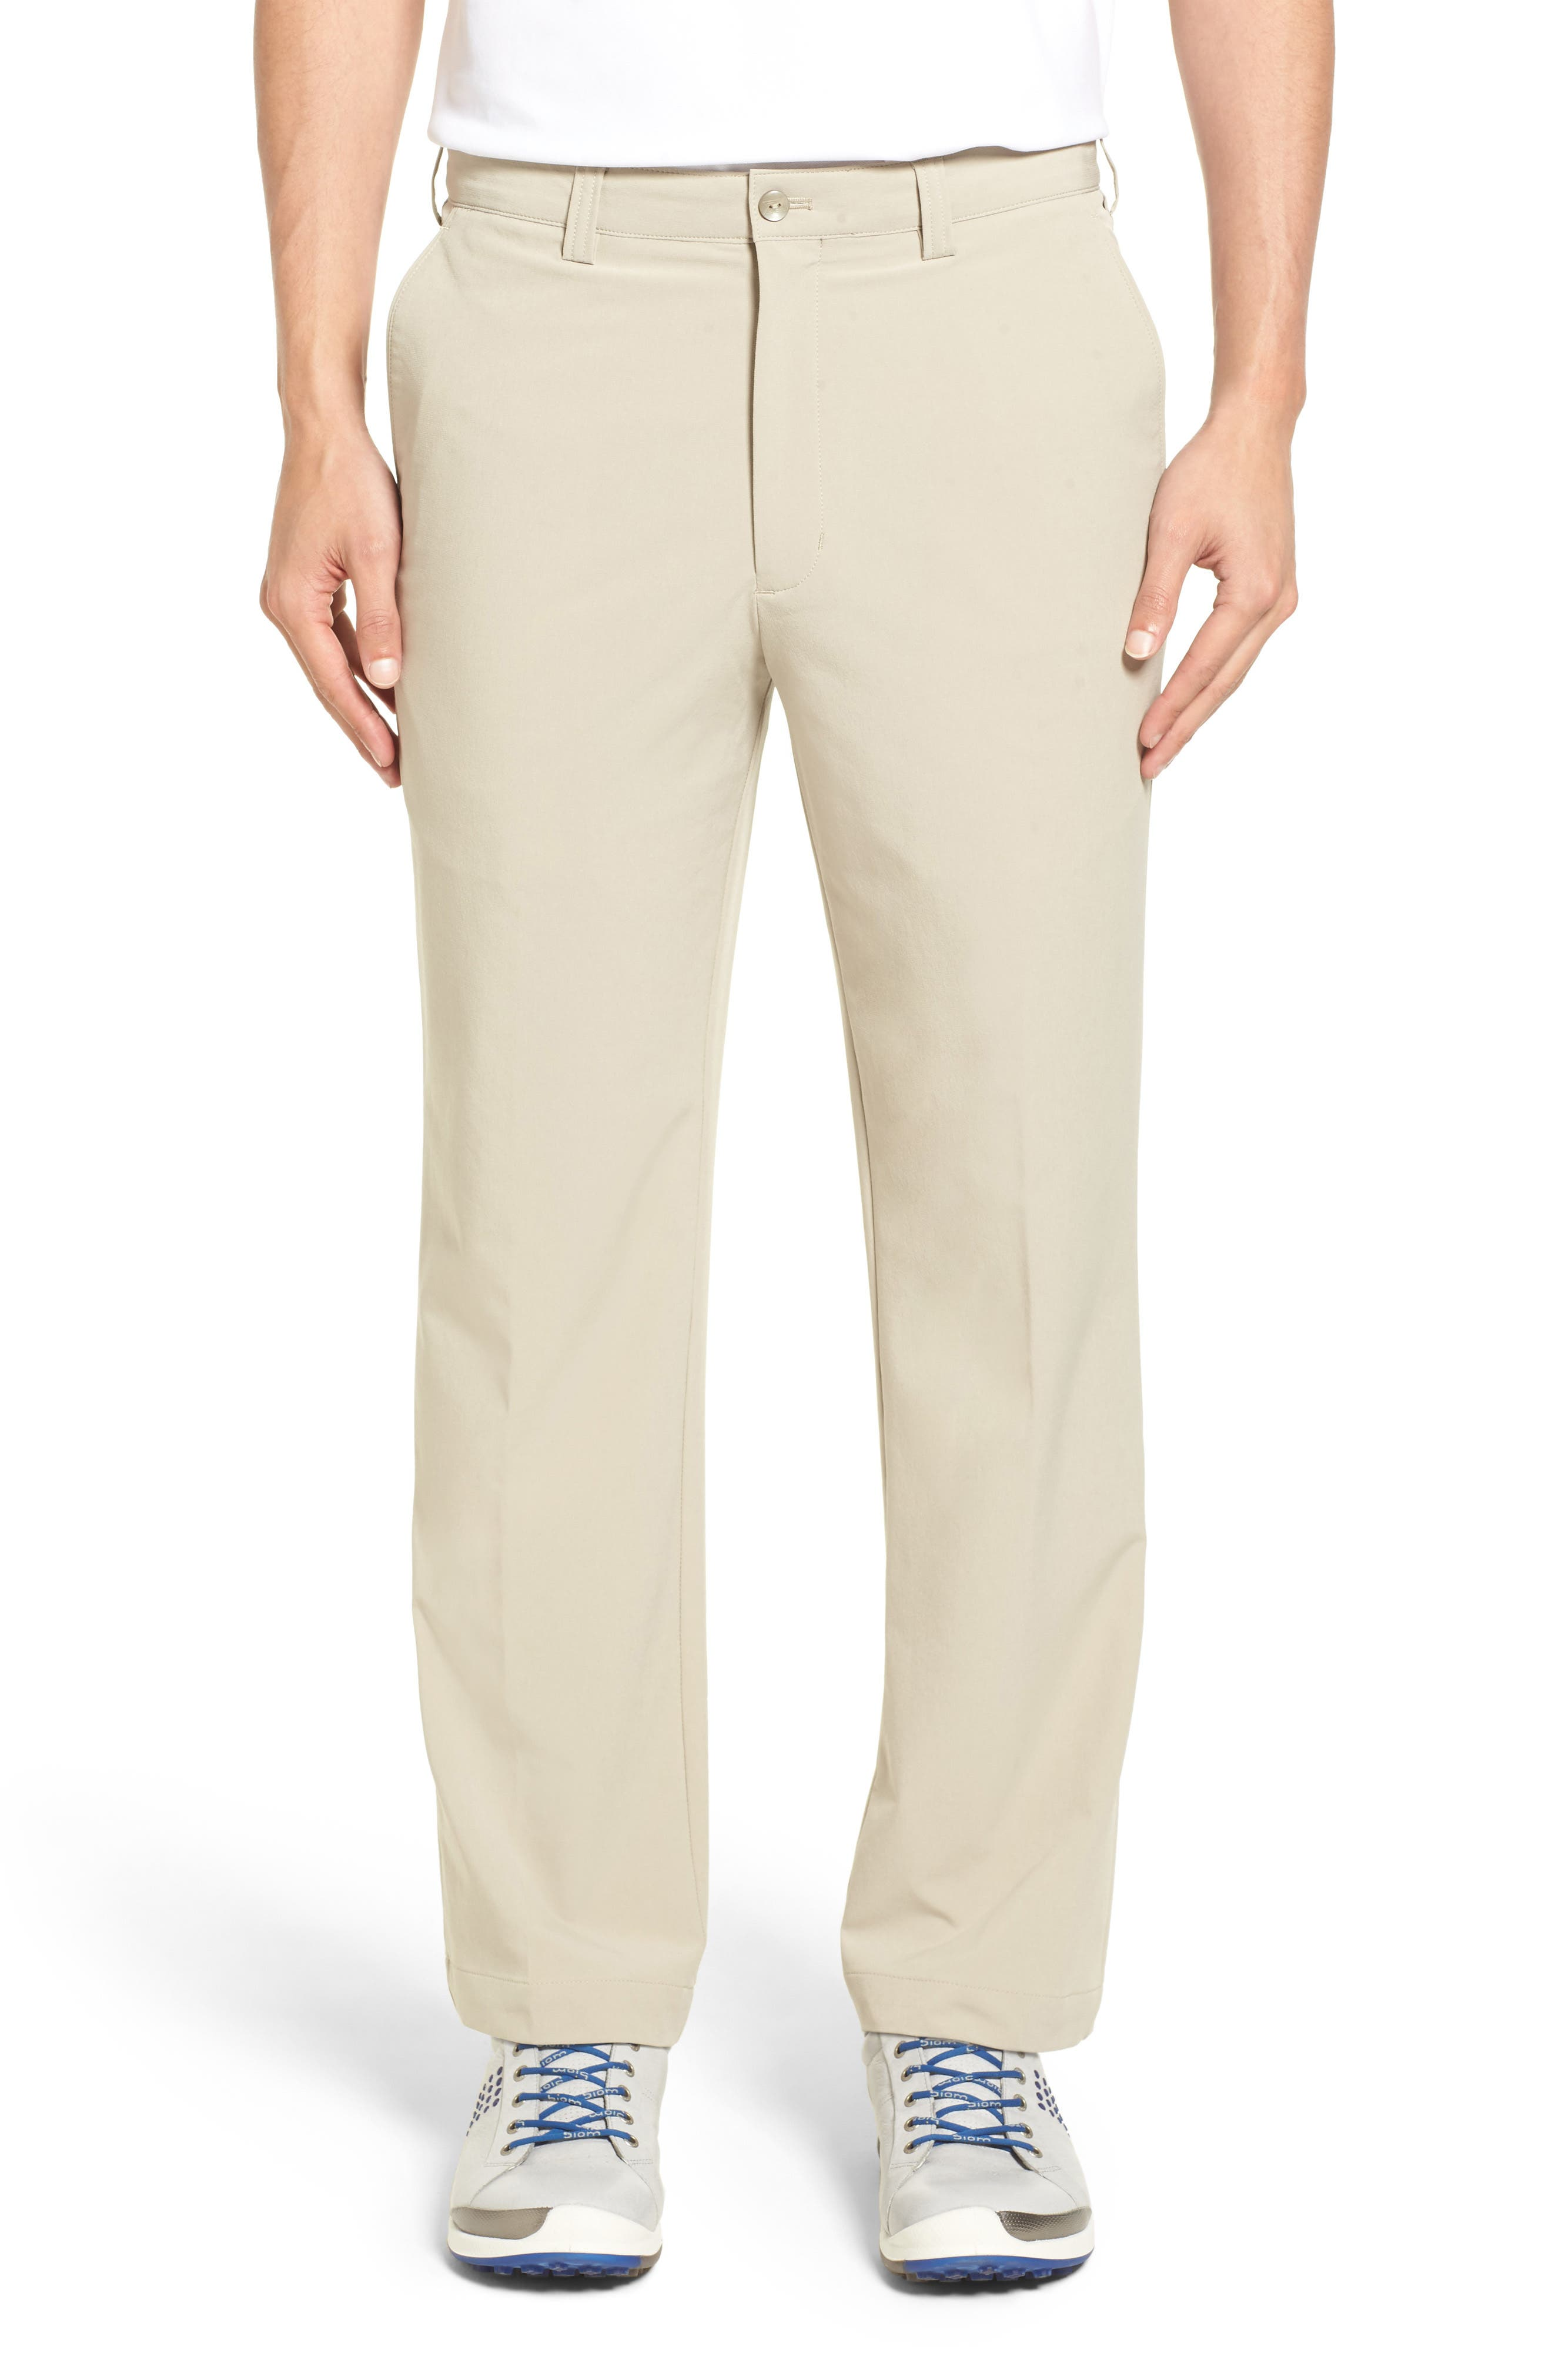 A pair of handsome flat-front pants are cut from four-way-stretch DryTec fabric, designed to wick moisture quickly so you stay cool, dry and comfortable. Style Name: Cutter & Buck Bainbridge Drytec Flat Front Straight Leg Pants. Style Number: 890661. Available in stores.